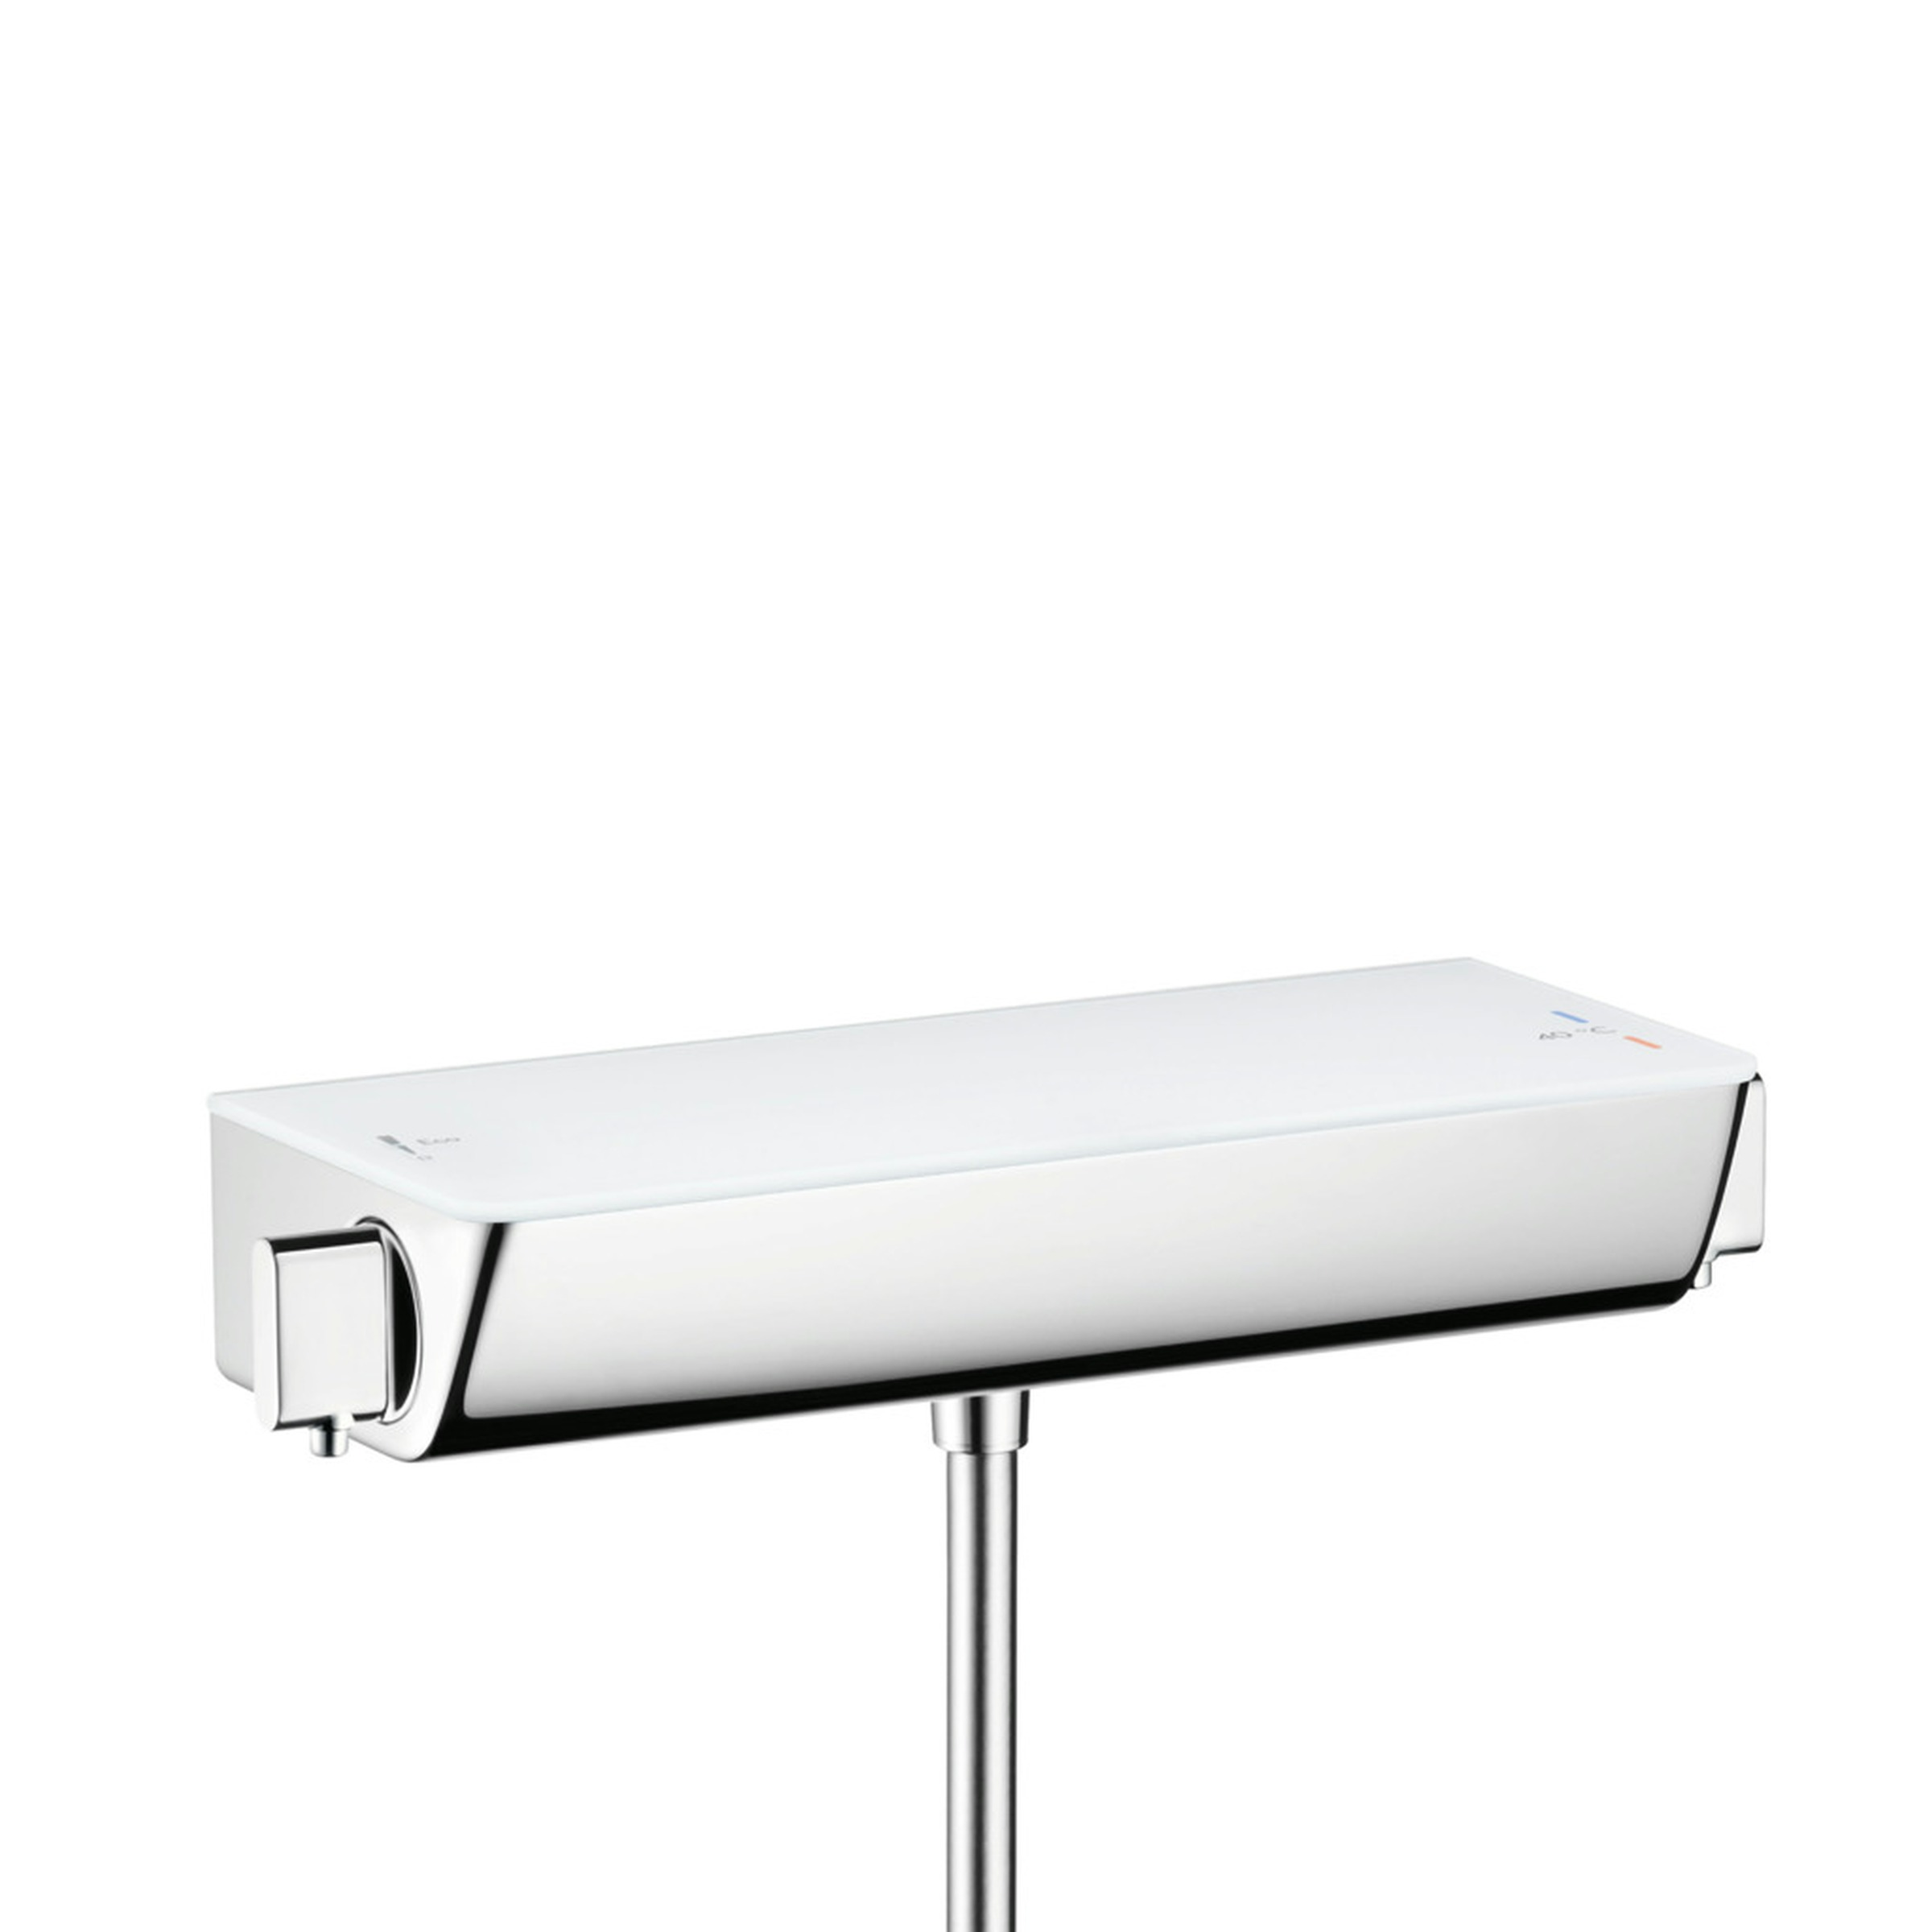 Hansgrohe Ecostat Select douche thermostaat kraan 15mm chroom-wit 13161400